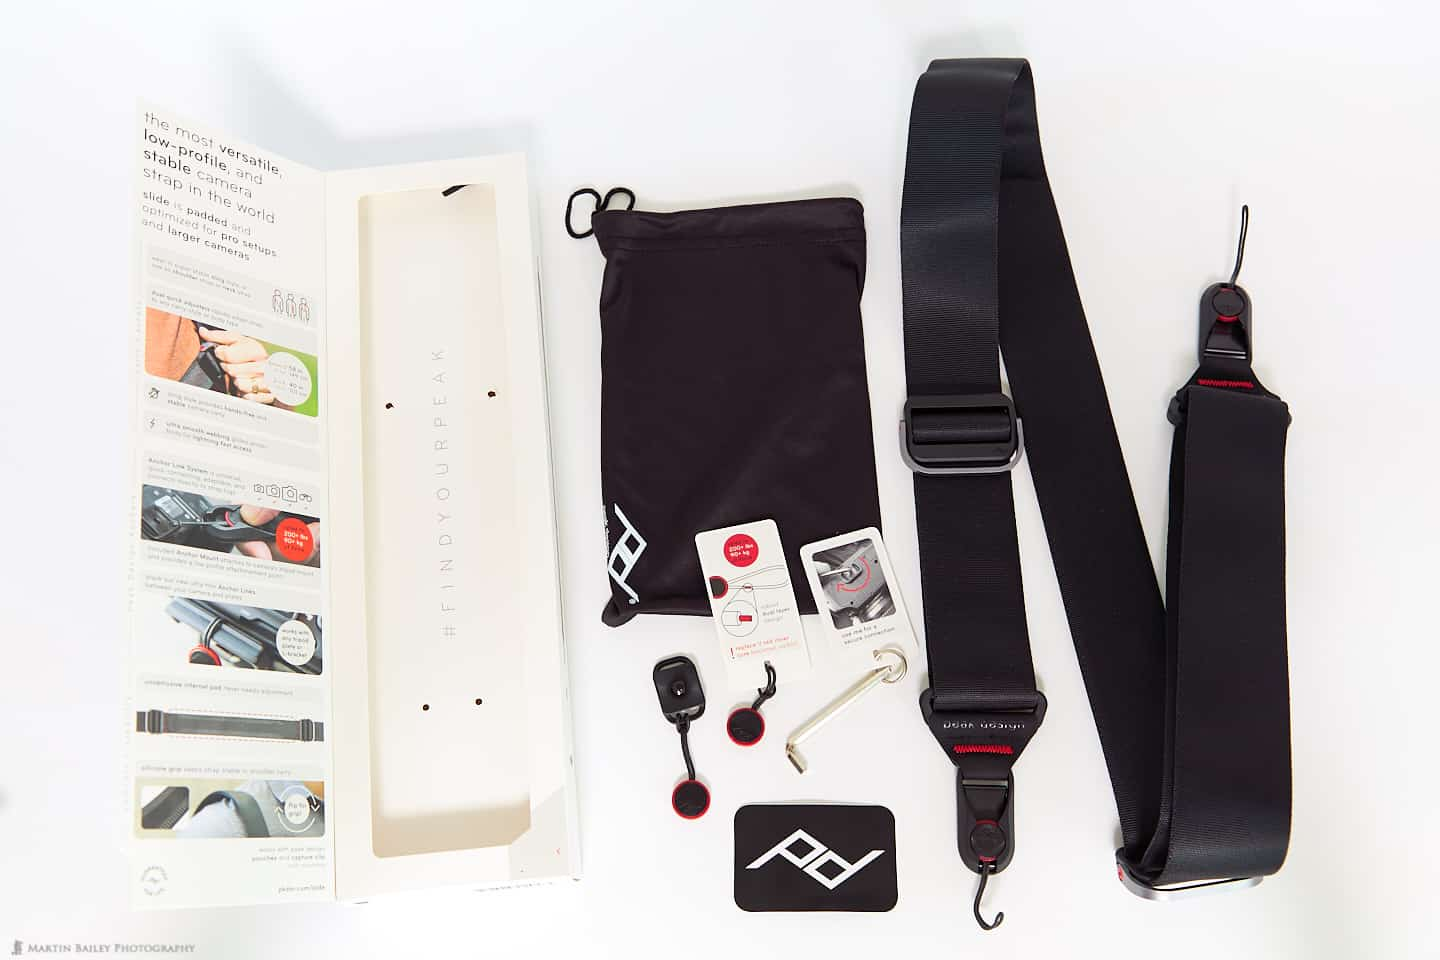 Peak Design Slide Strap Contents